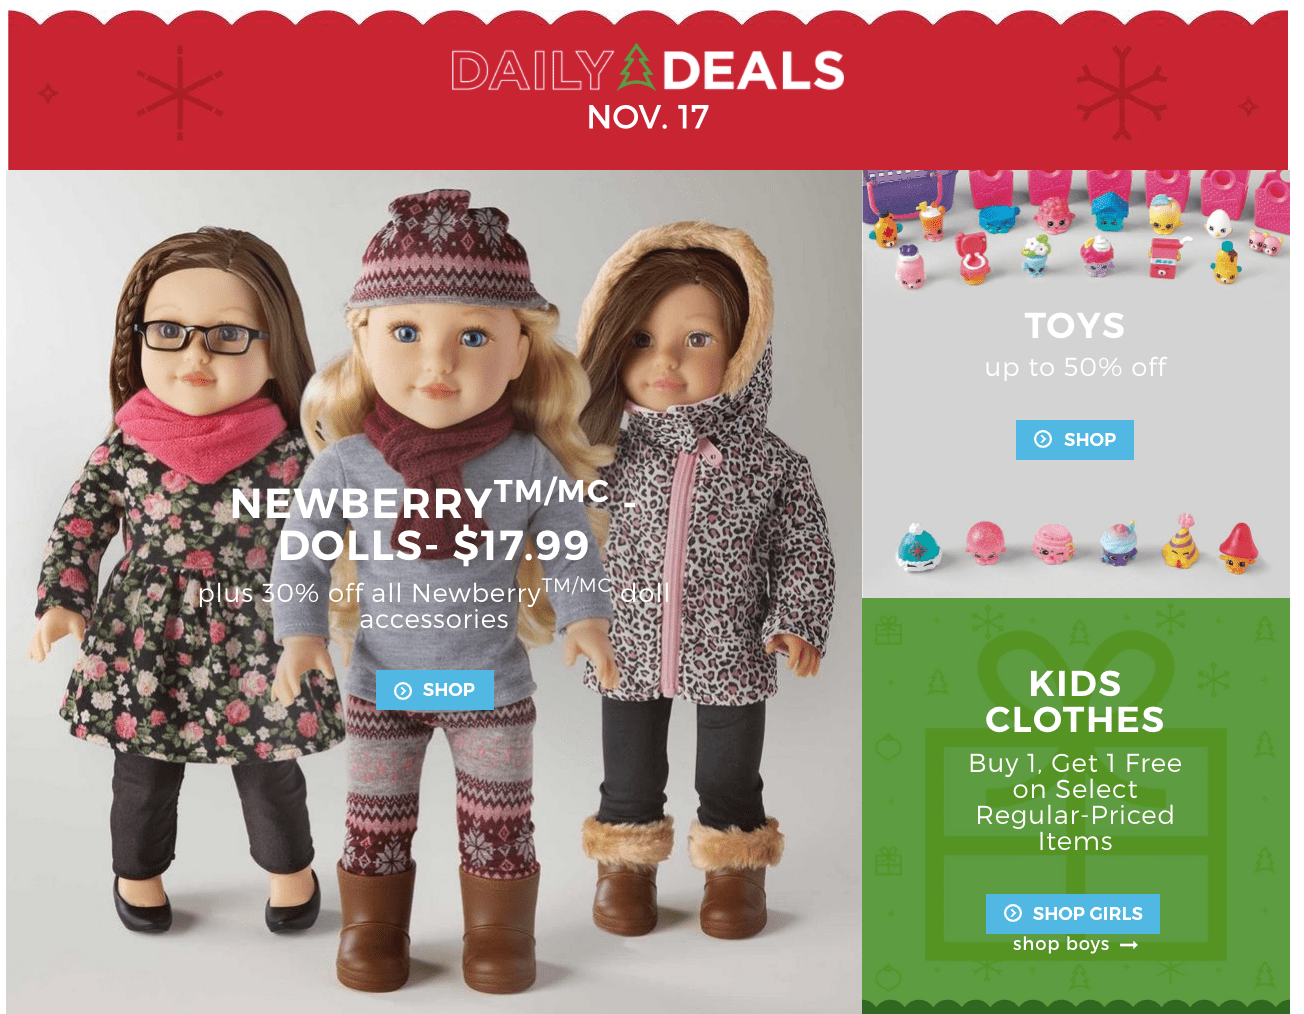 Sears Canada Daily Deals: $17.99 Newberry Dolls + Up to 50% Off Toys + Up to 70% Off Cookware + More!